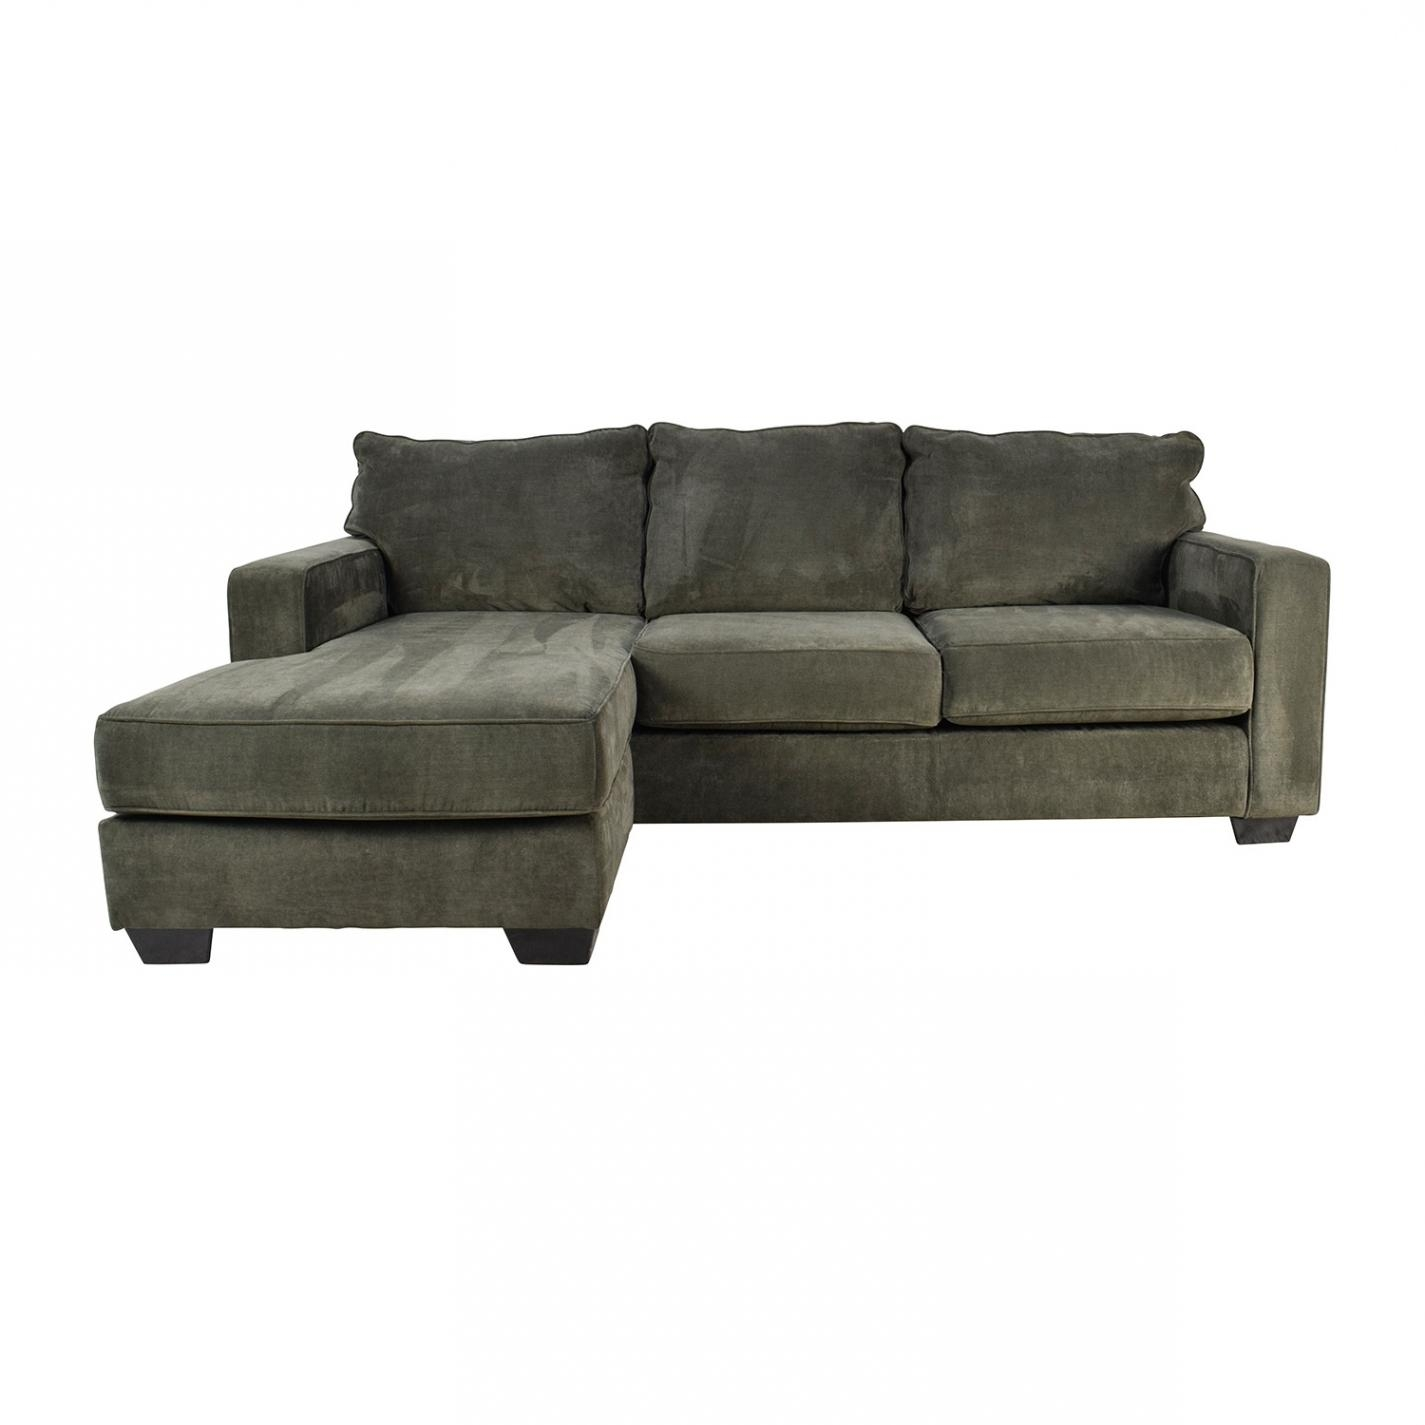 Homey Design Hd 1302 Sf Casabella Euro Sofa | Tehranmix Decoration With Regard To Euro Sofas (View 17 of 20)